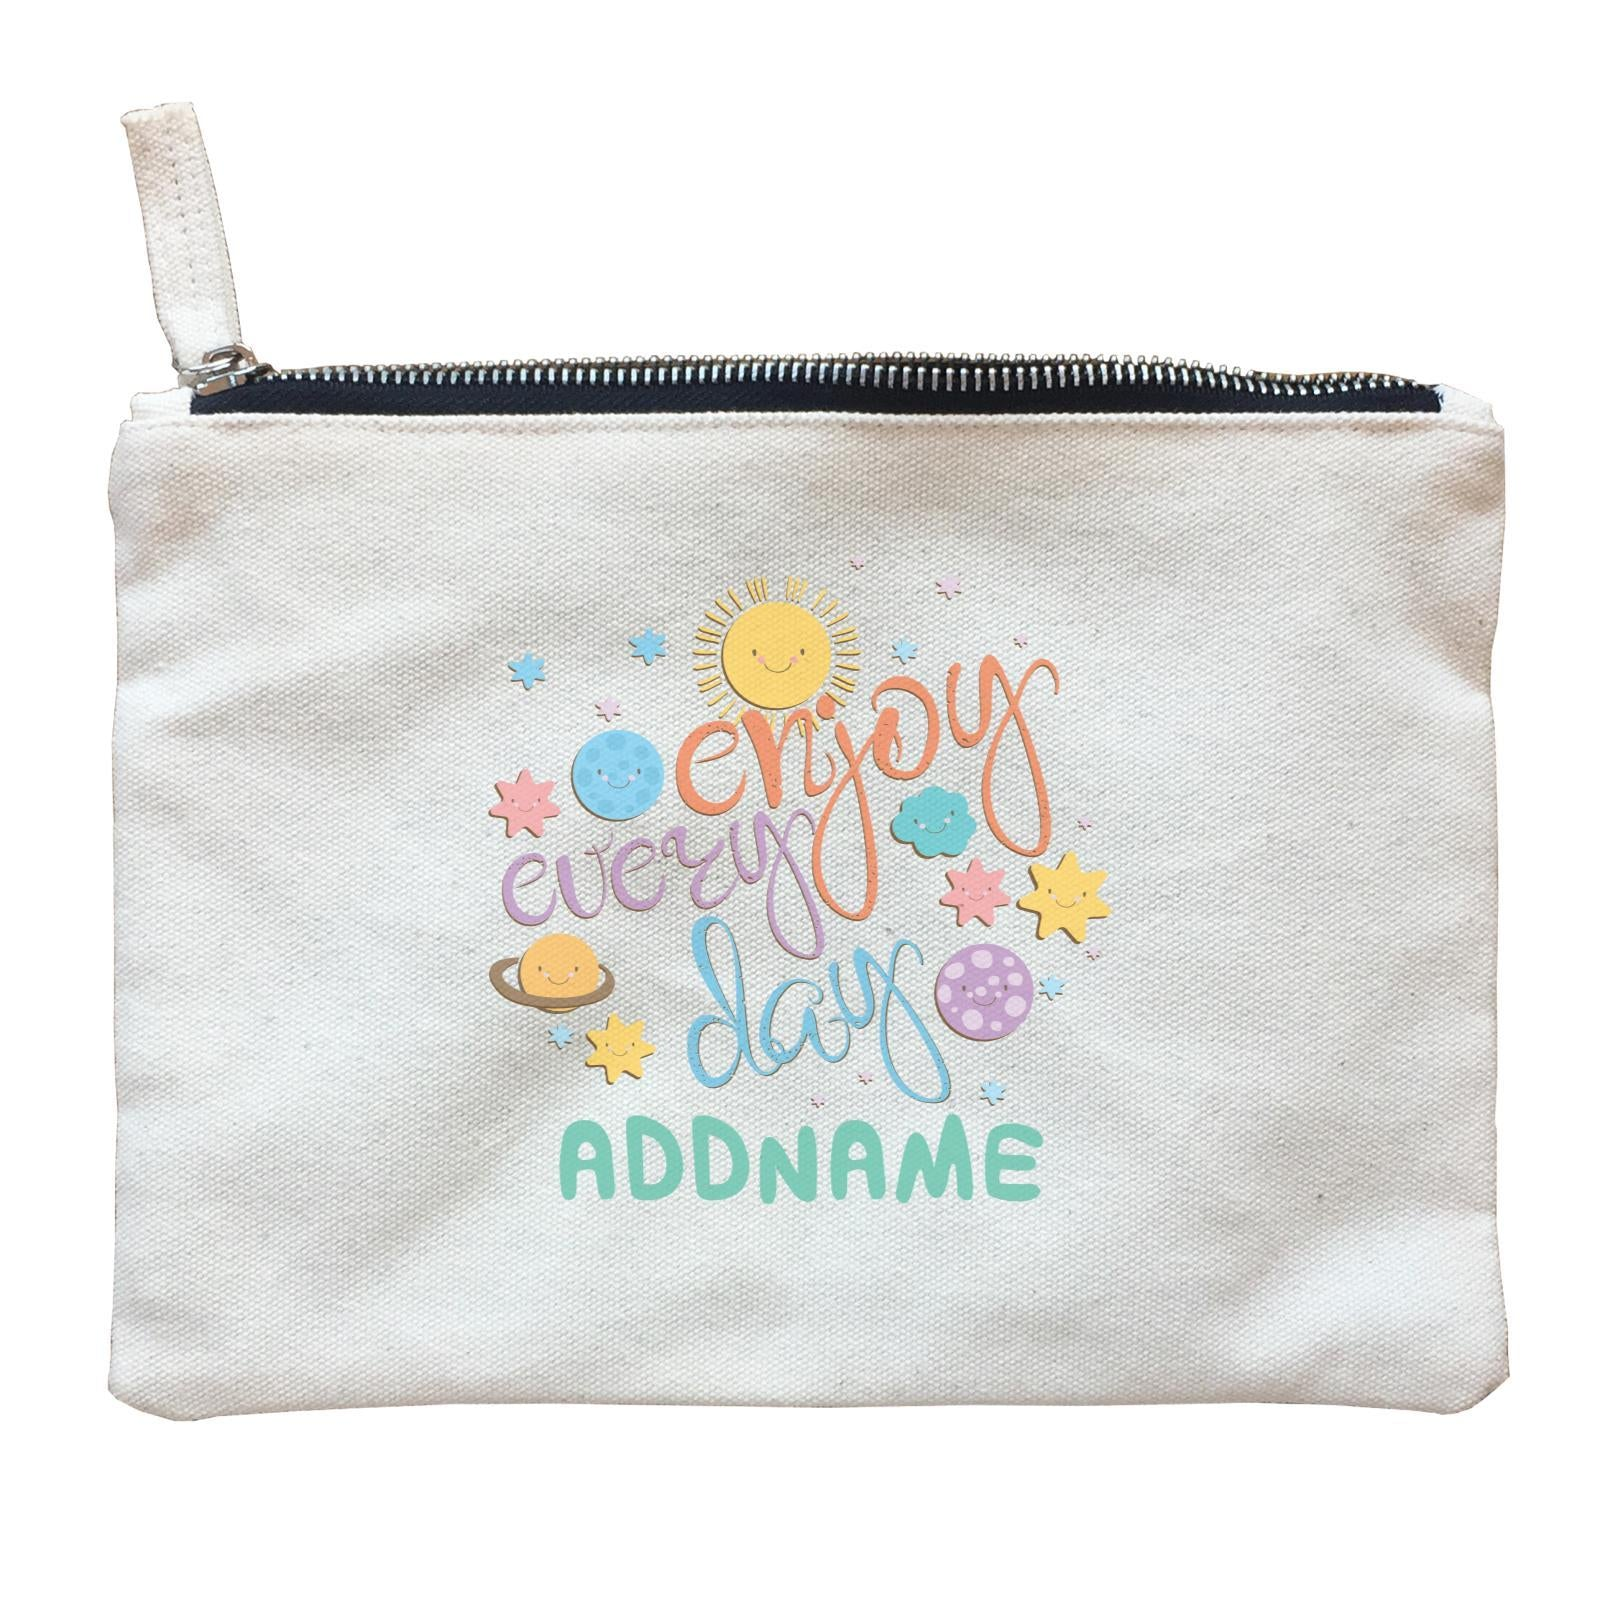 Children's Day Gift Series Enjoy Every Day Space Addname  Zipper Pouch